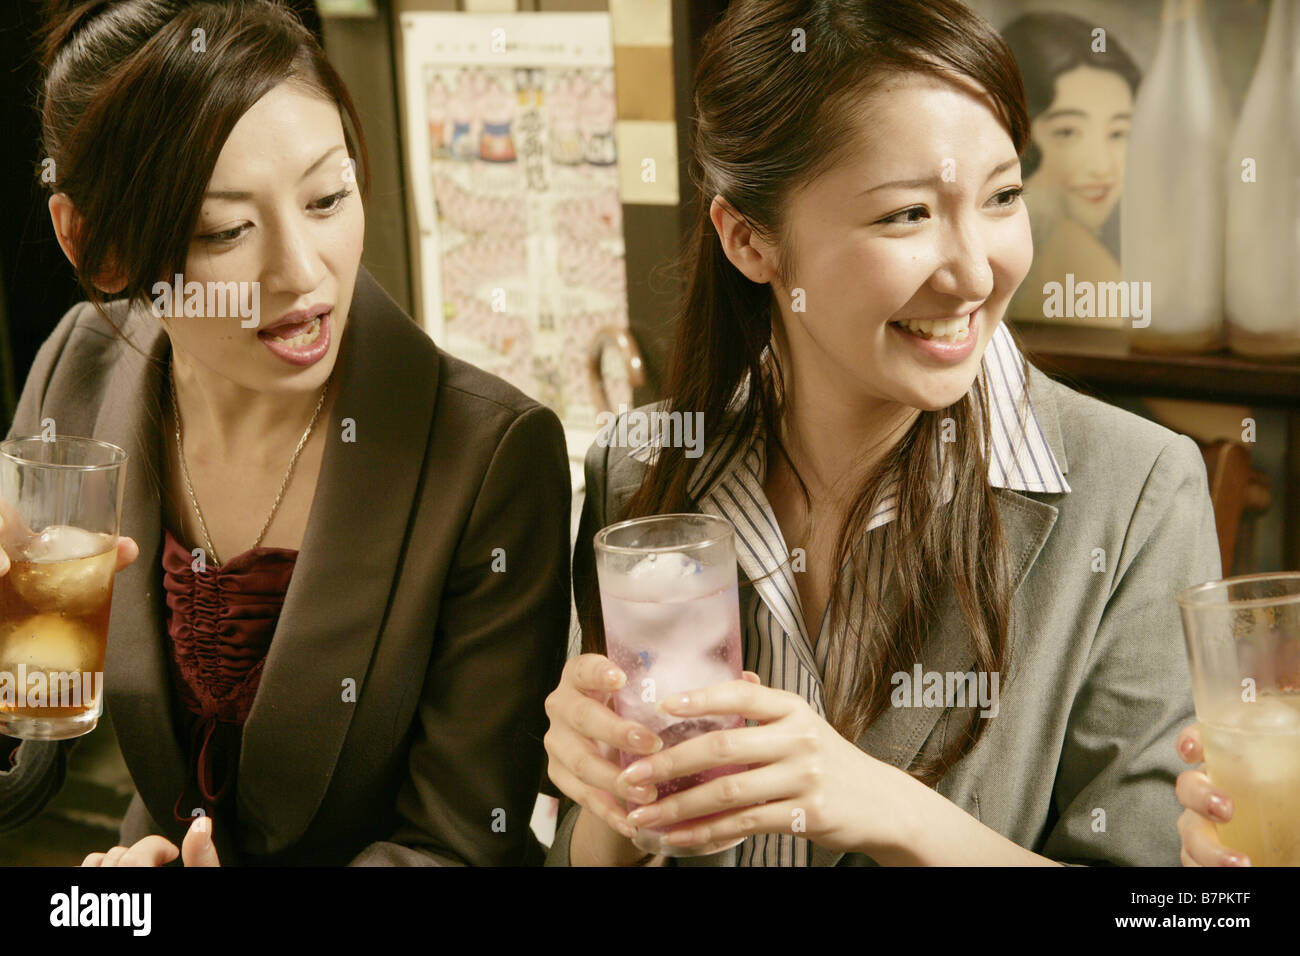 Chat With Japanese Women